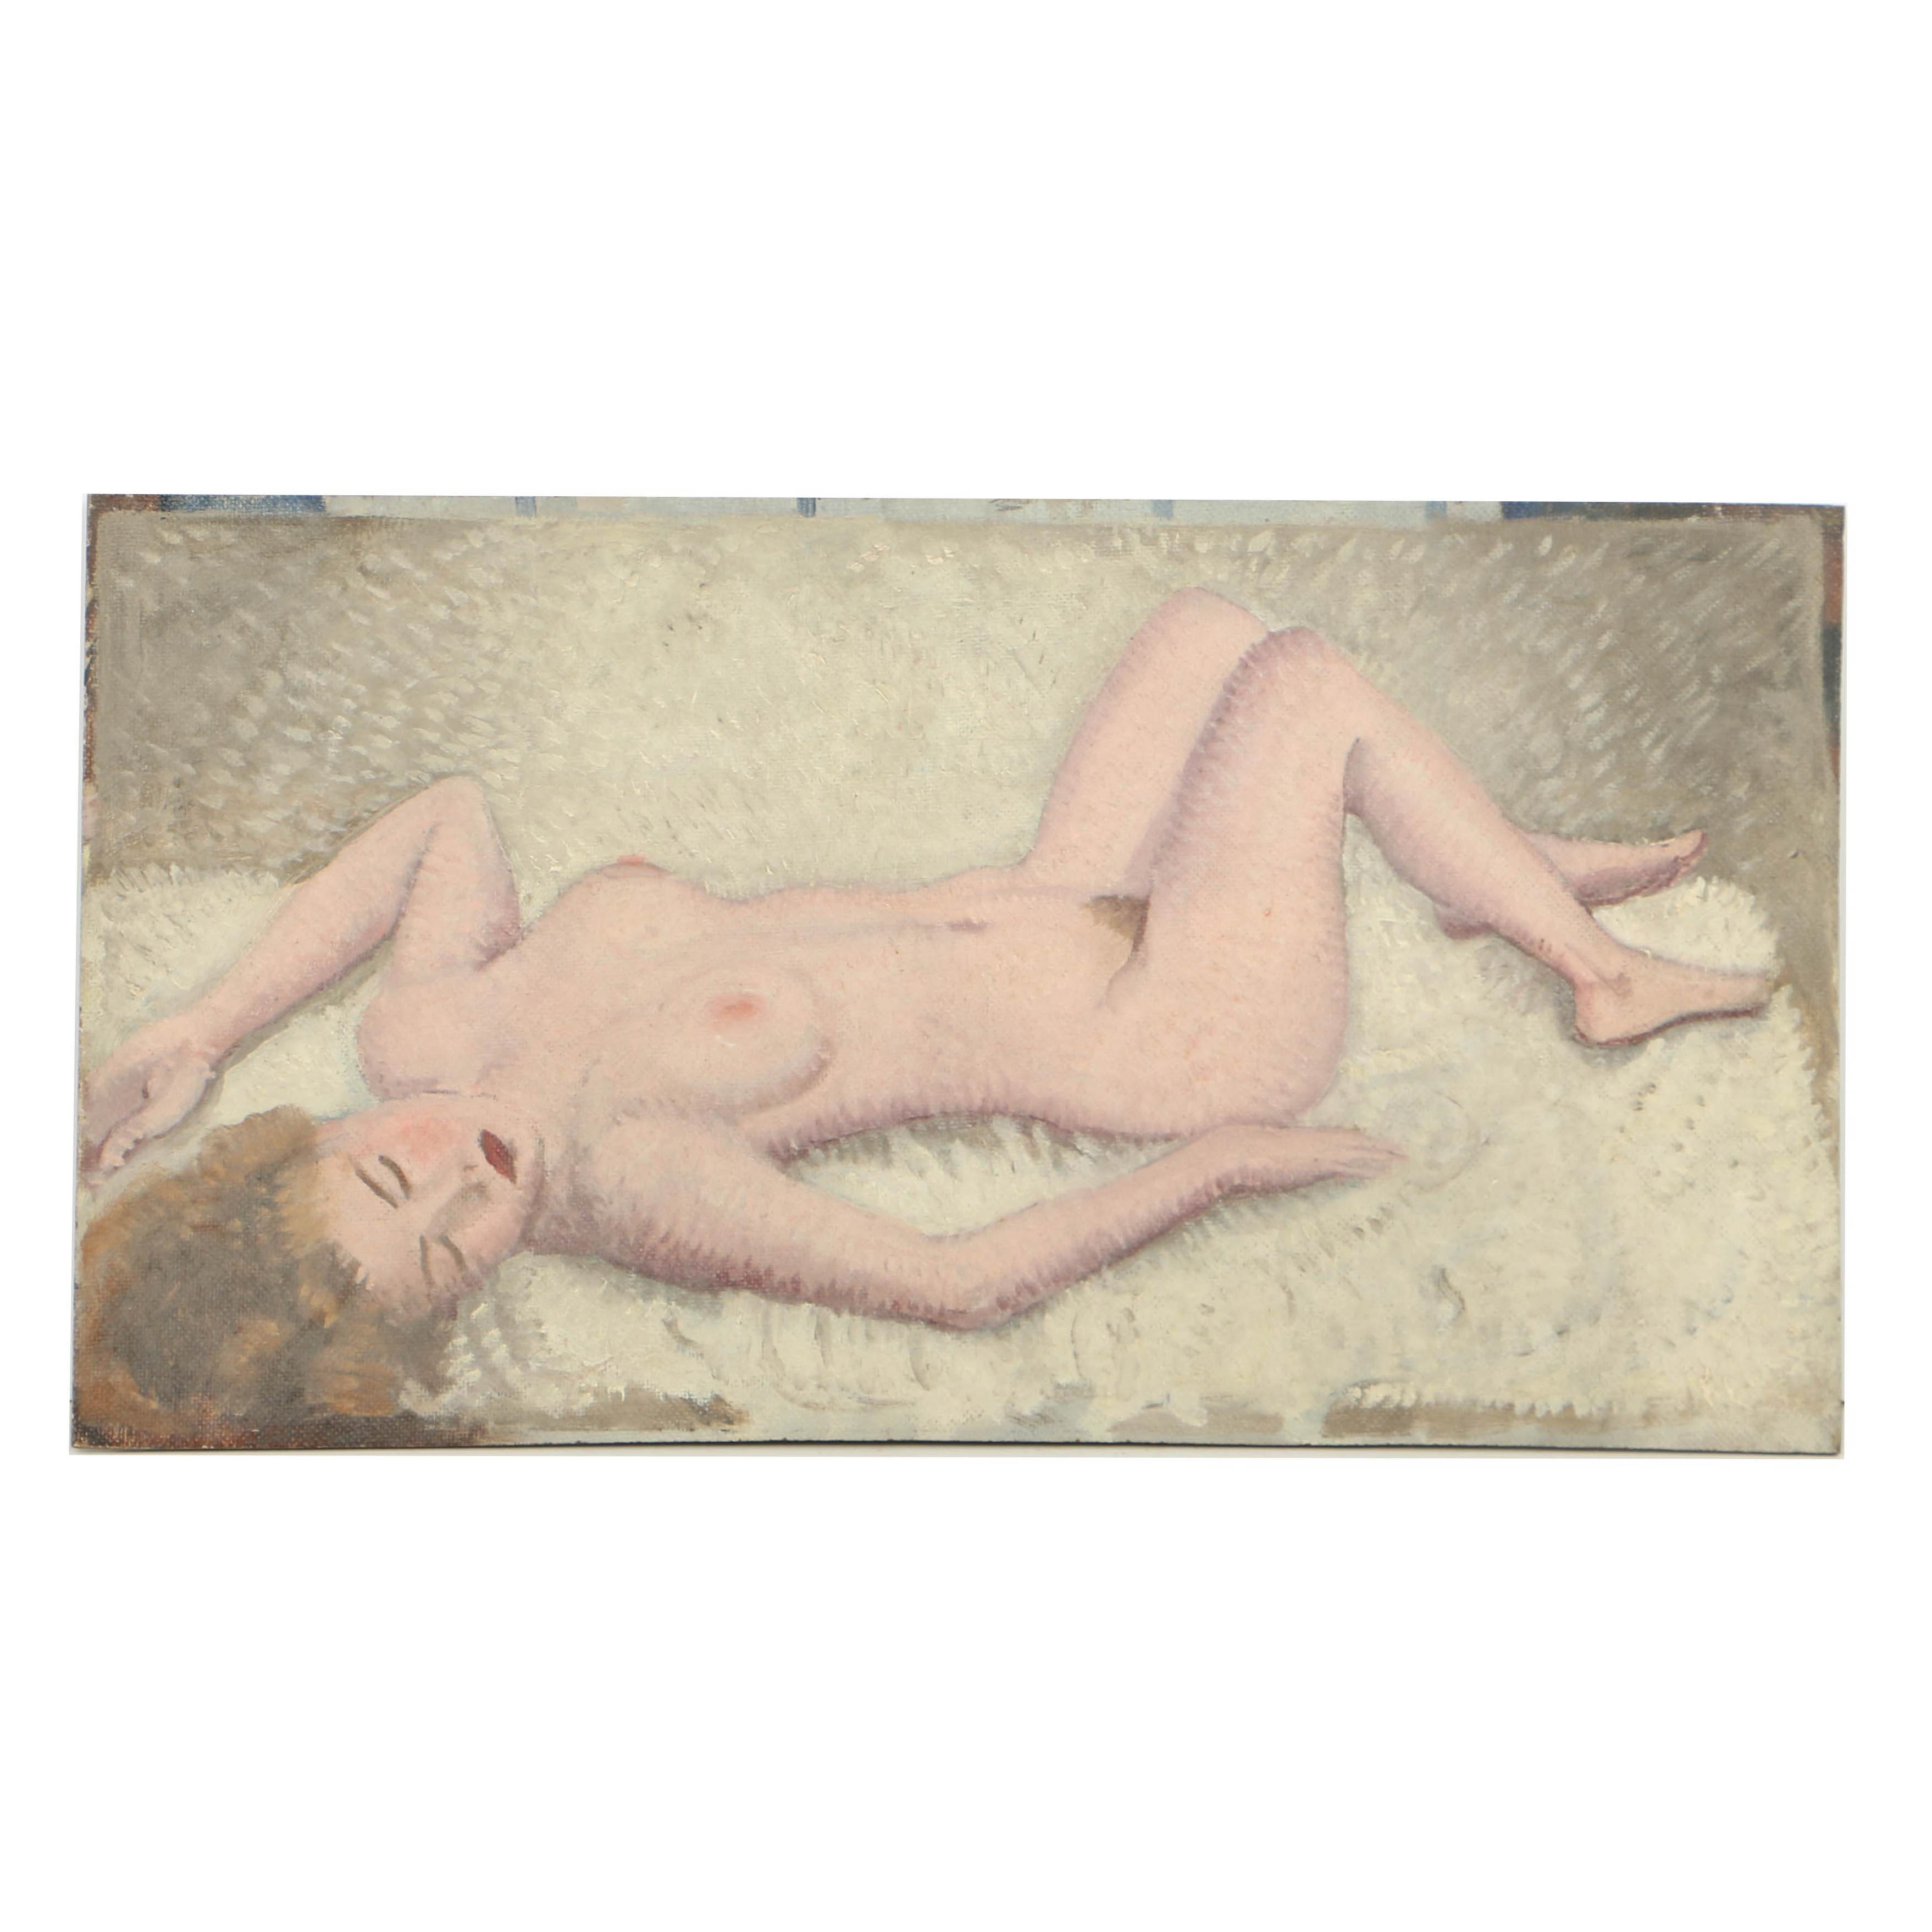 Lawrence McConaha Oil Painting on Board of Nude Female Figure